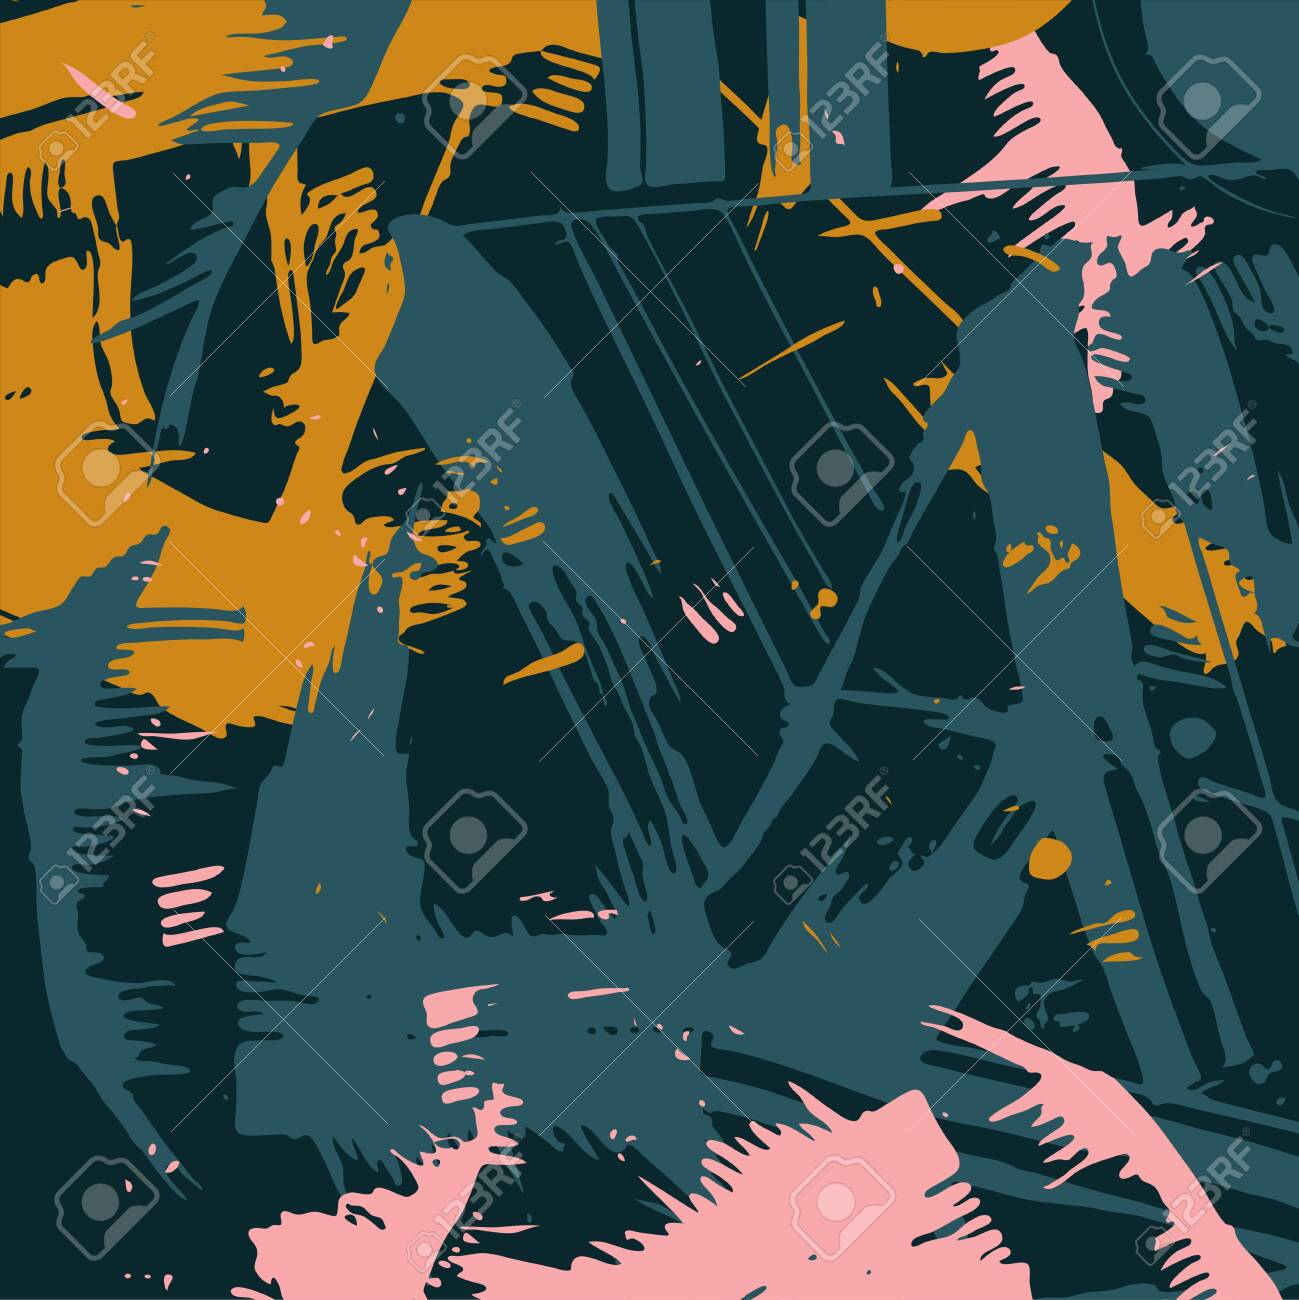 Abstract pattern. Various overlapping strokes. Can be used for designer backgrounds and packaging. Vector illustration. - 151373620